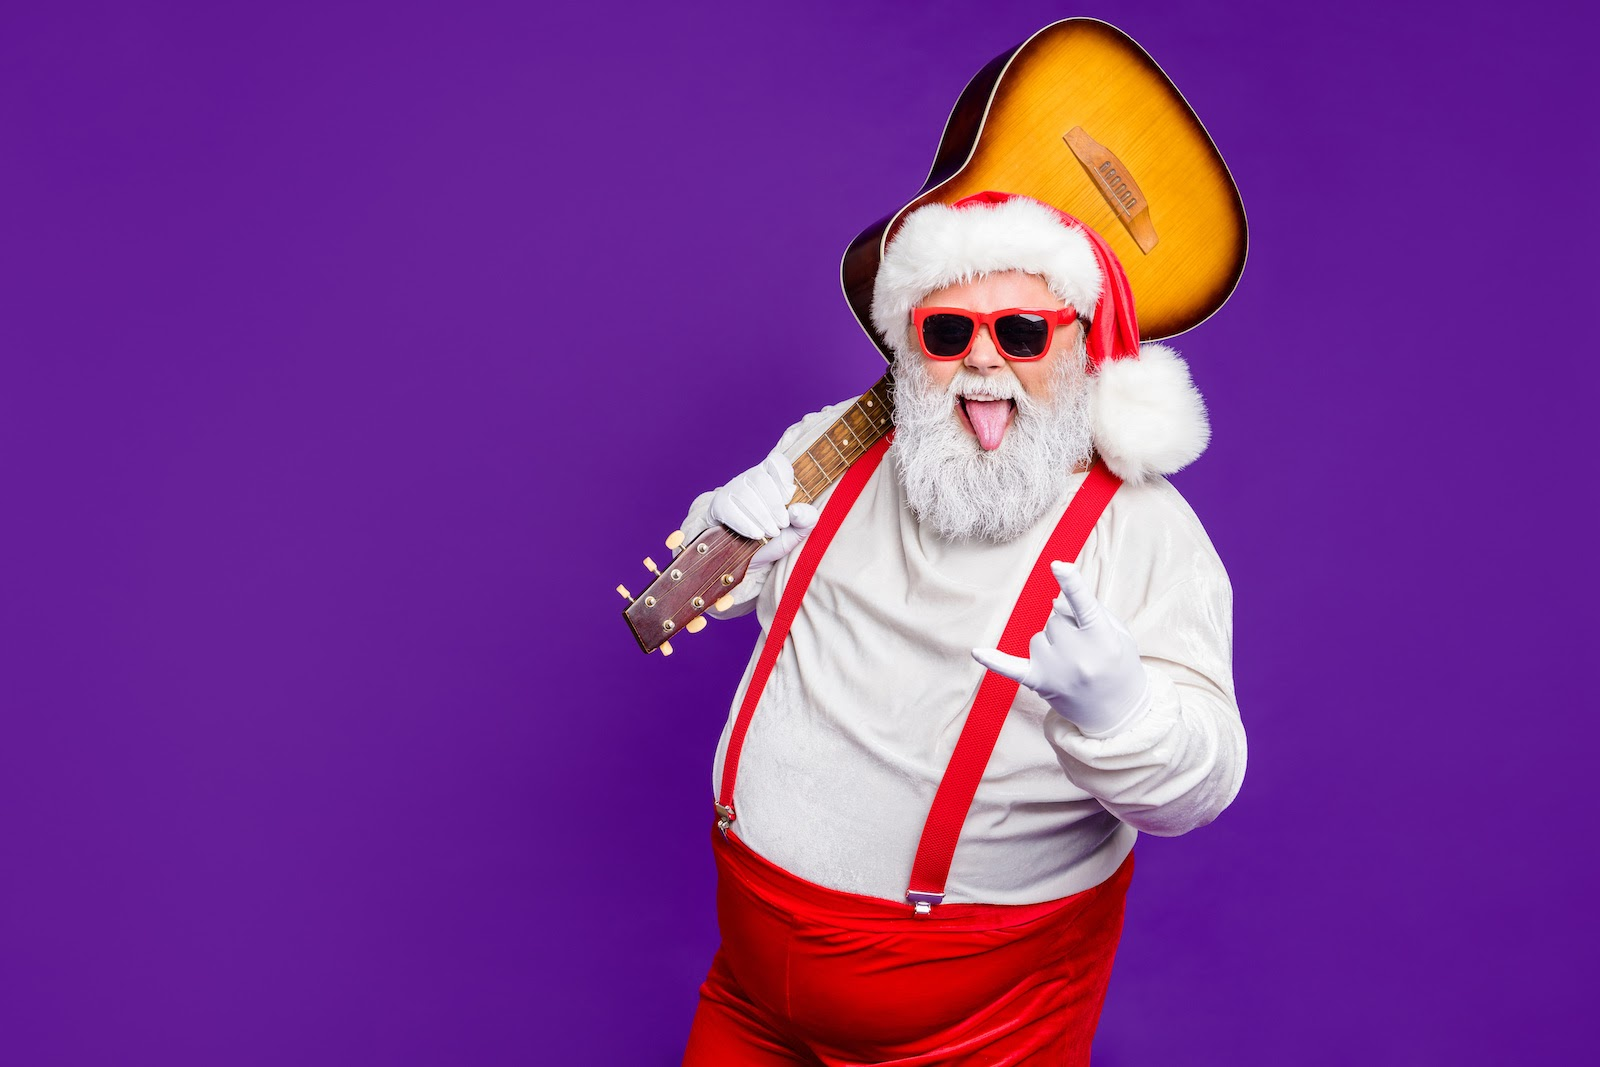 Santa Claus with a guitar performs at a virtual Christmas party